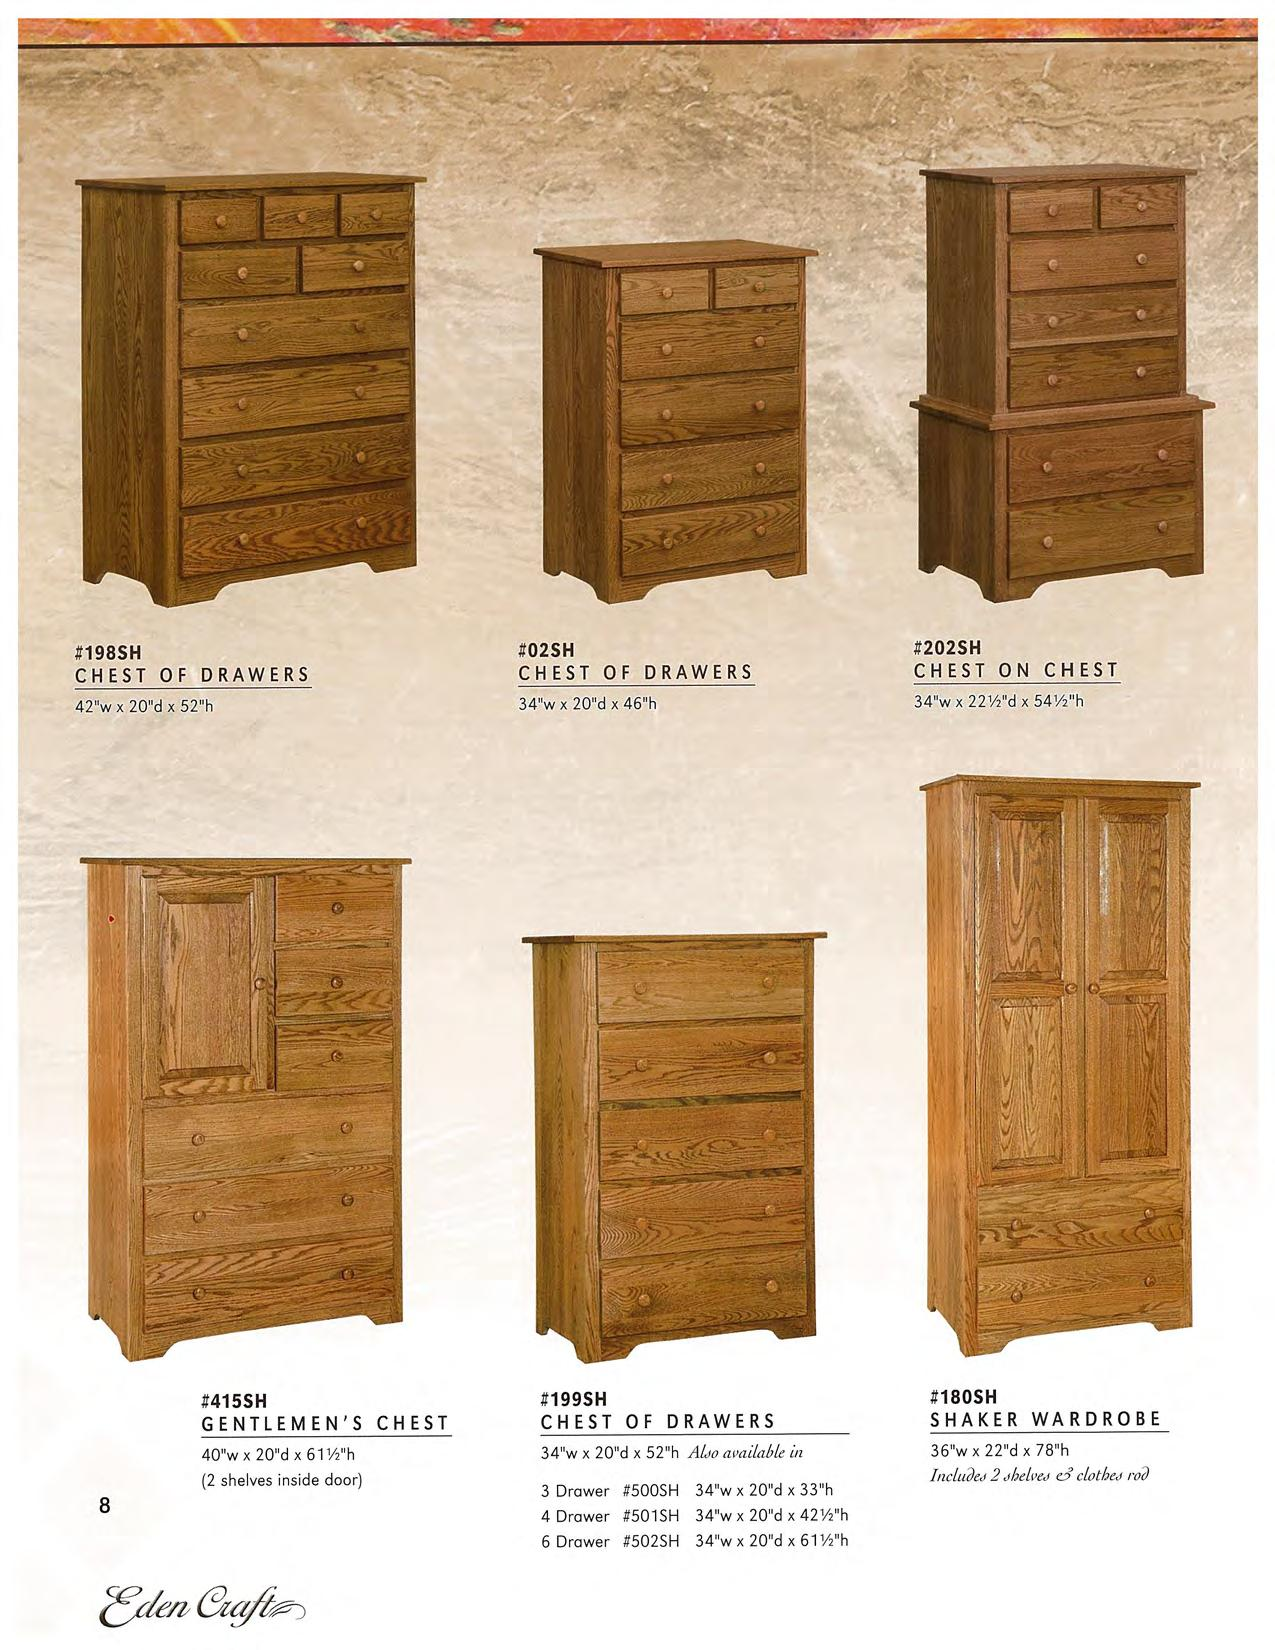 furniture-page-008